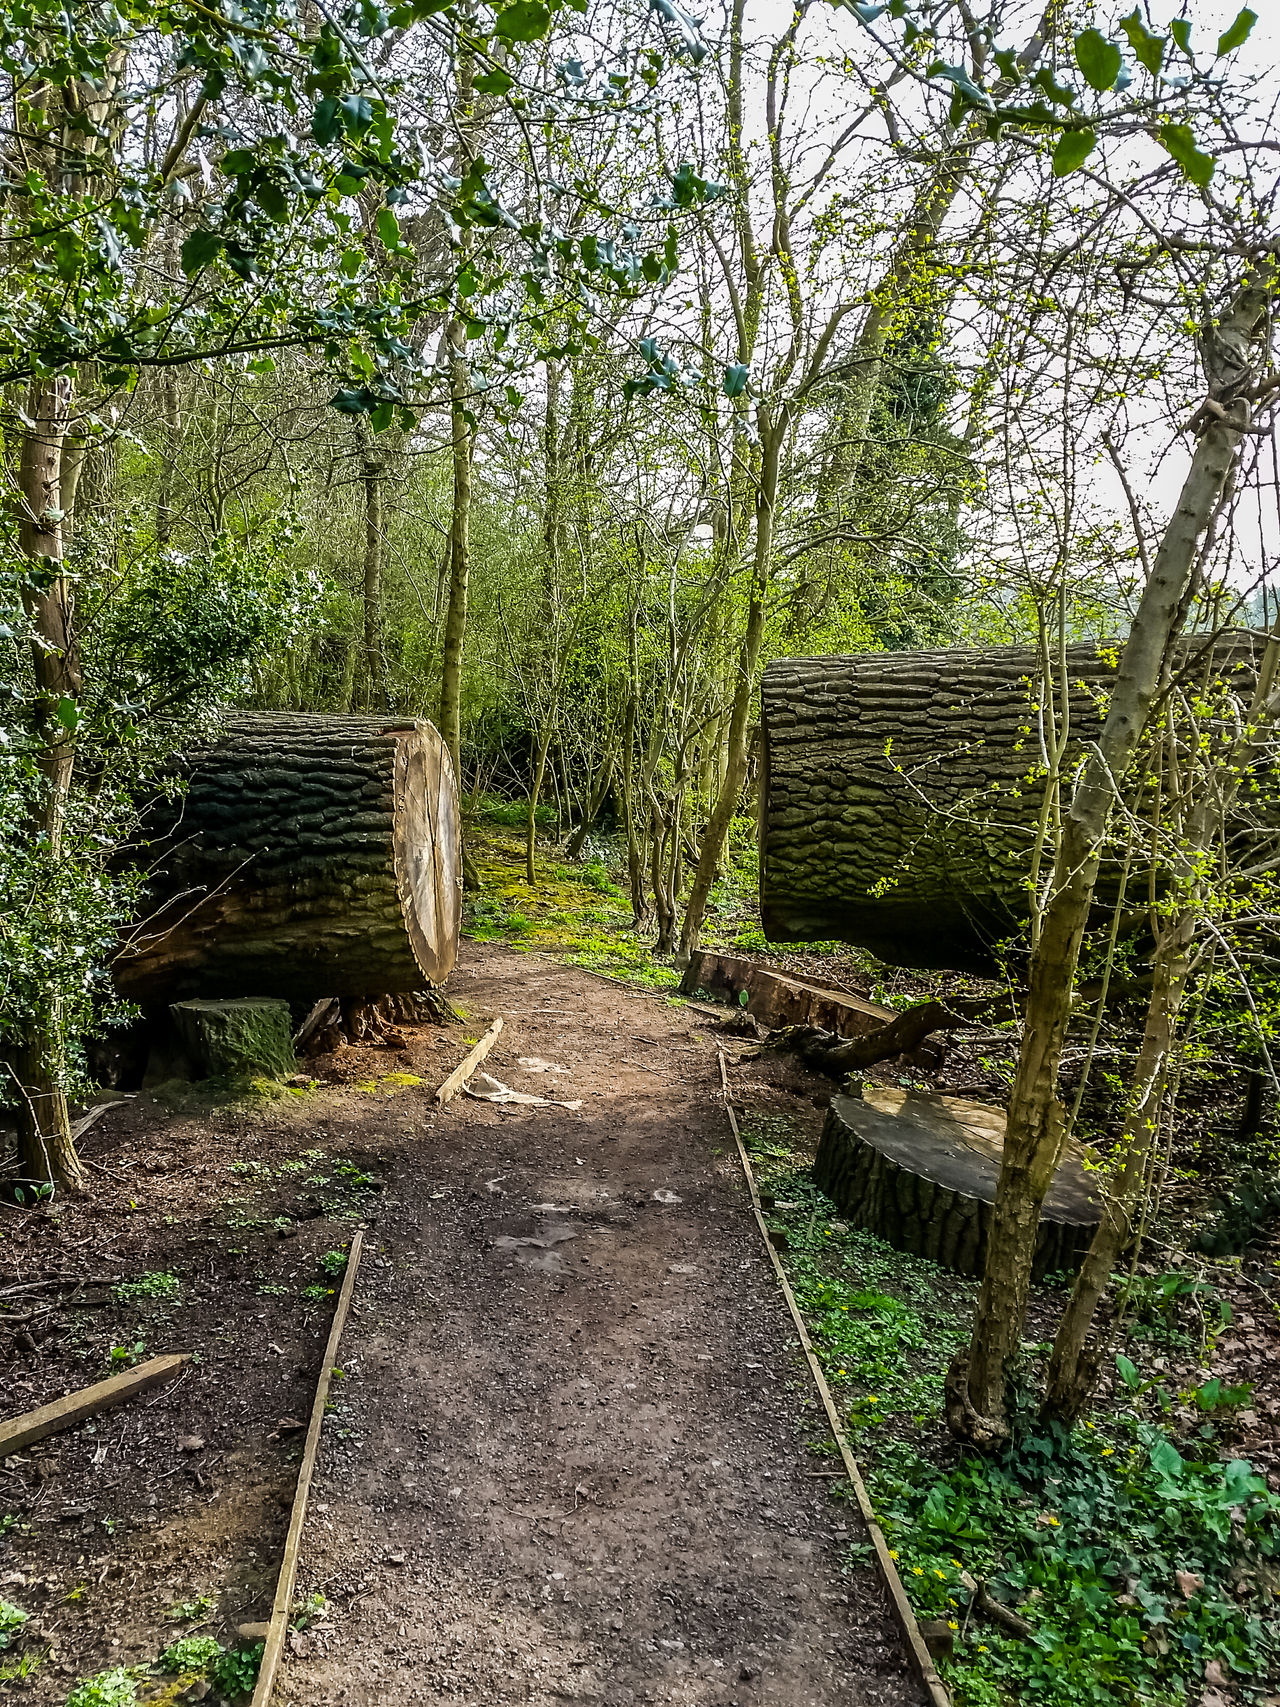 The path is crossing a fallen tree Artifical Path Bark Bark Texture Beauty In Nature Day Easyaccess Fallen Tree Forest Green Color Logs Nature No People Outdoors Passage Path Plant Split Tourist Way Tranquility Tree Tree Trunk Wood - Material Woodcutting